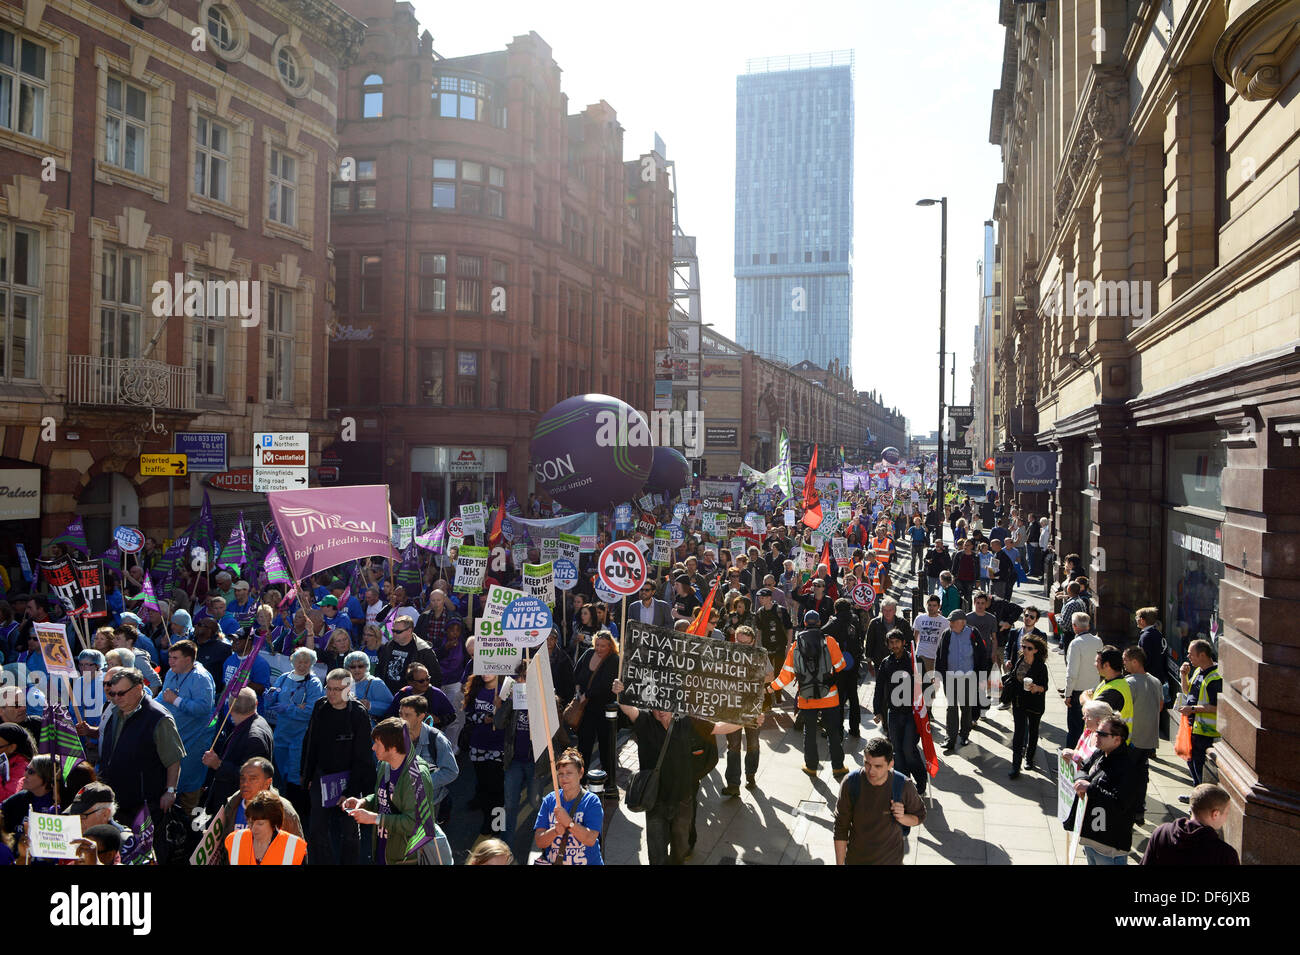 Manchester, UK. 29th Sept 2013. A view of Deansgate during a North West TUC organised march and rally intending - Stock Image